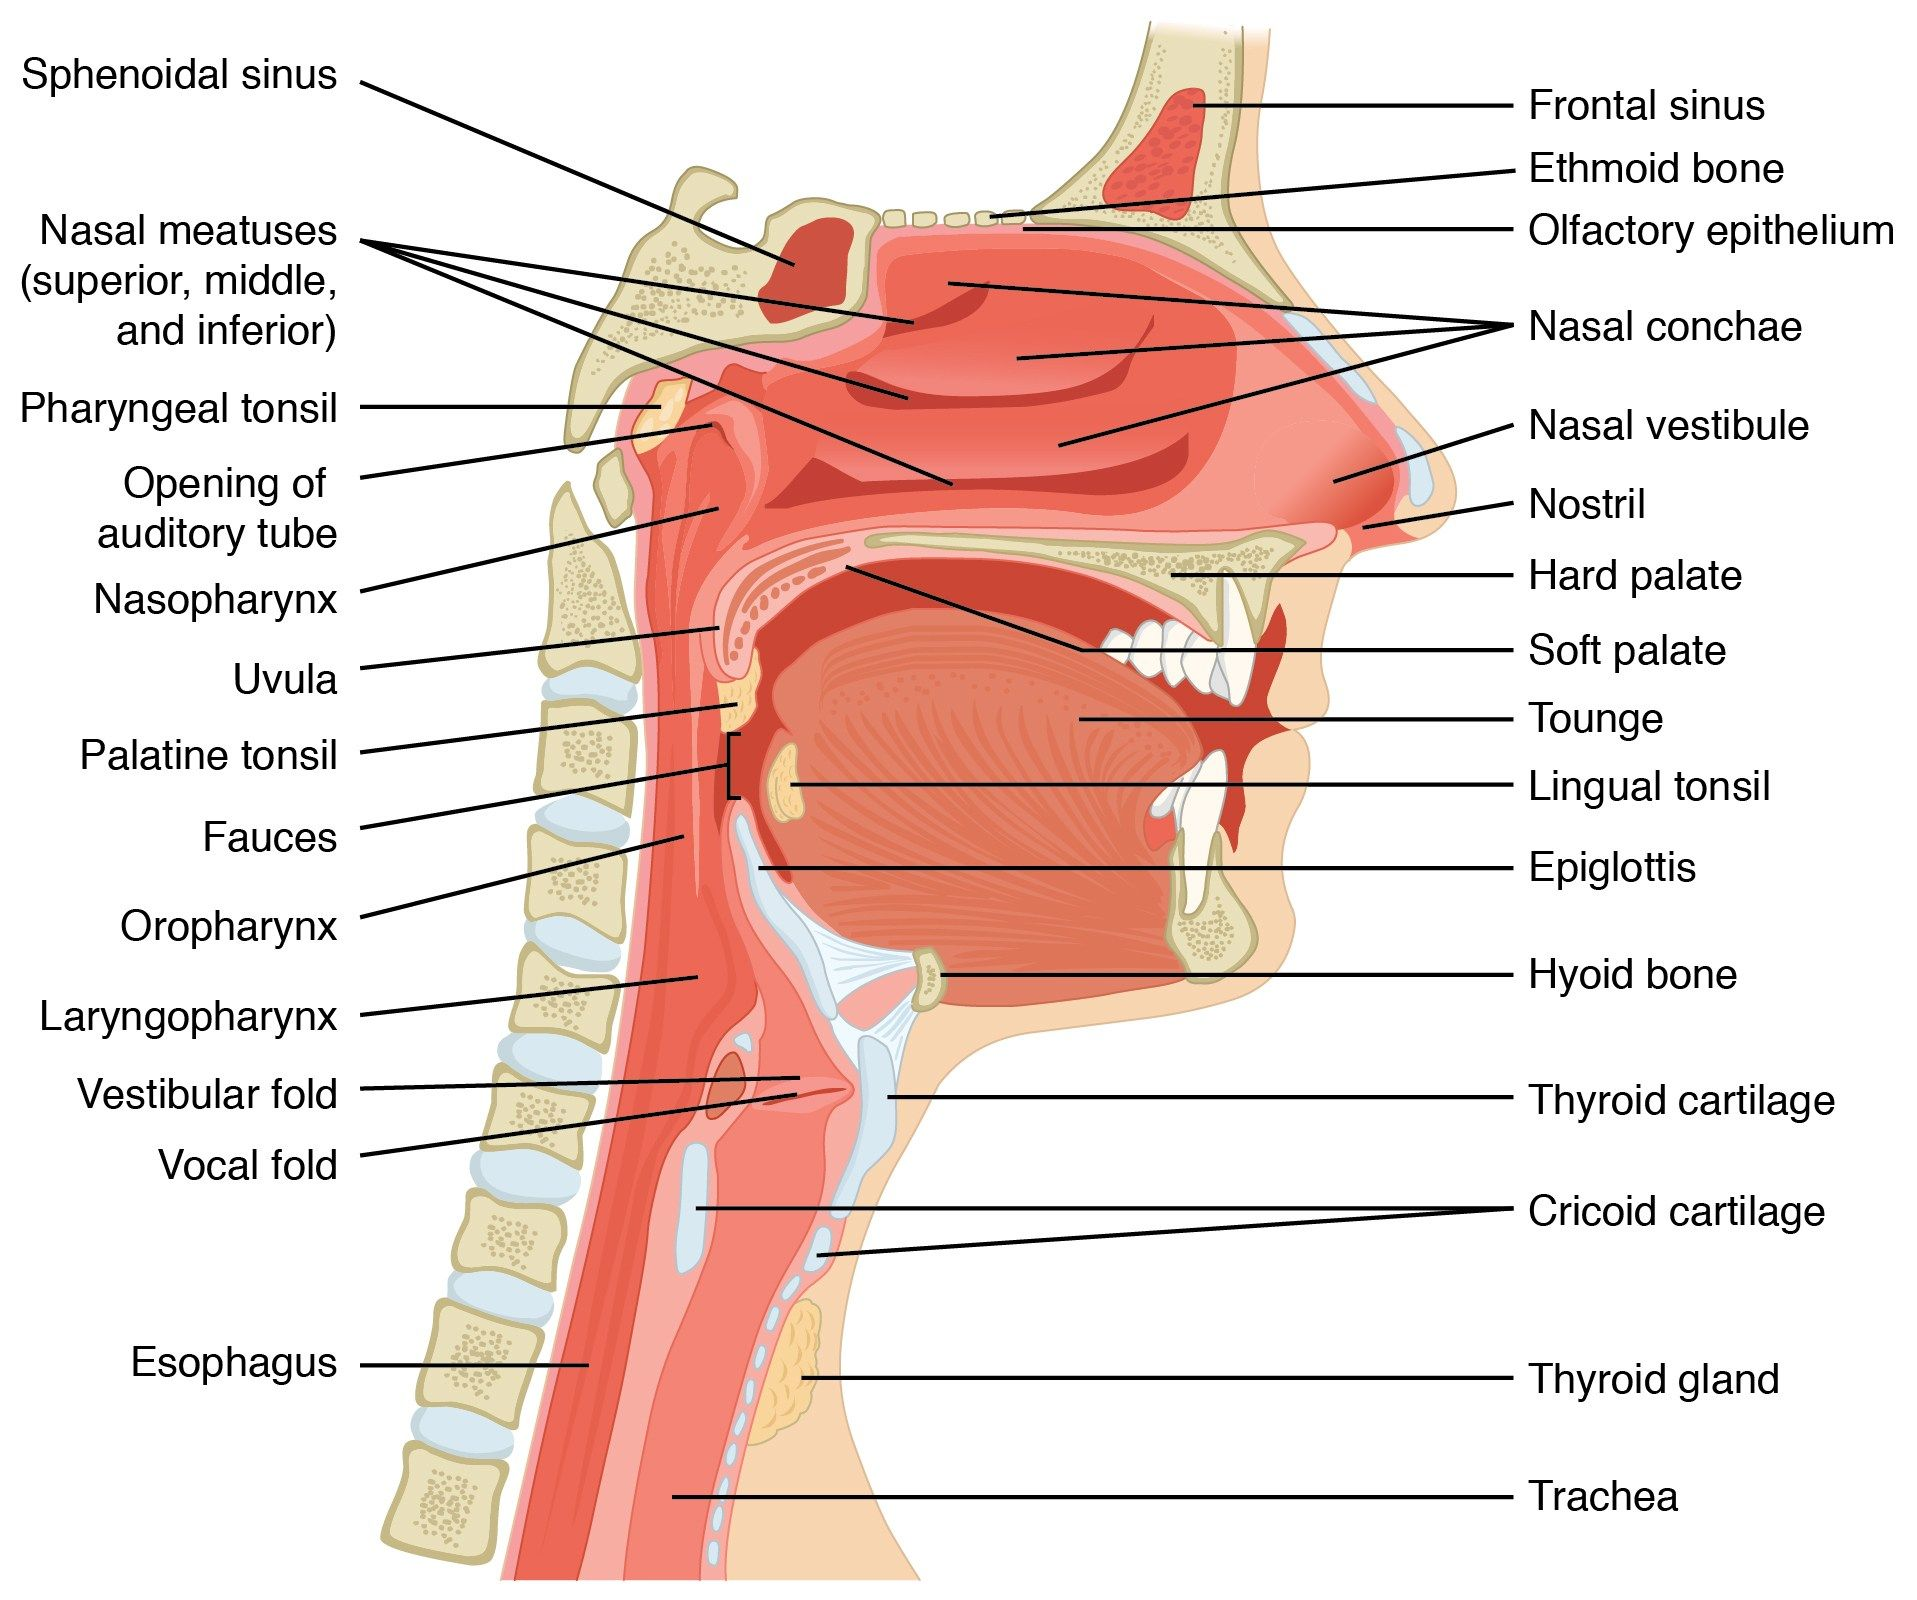 small resolution of labelled diagram of pharynx wiring diagram advance labelled diagram of pharynx